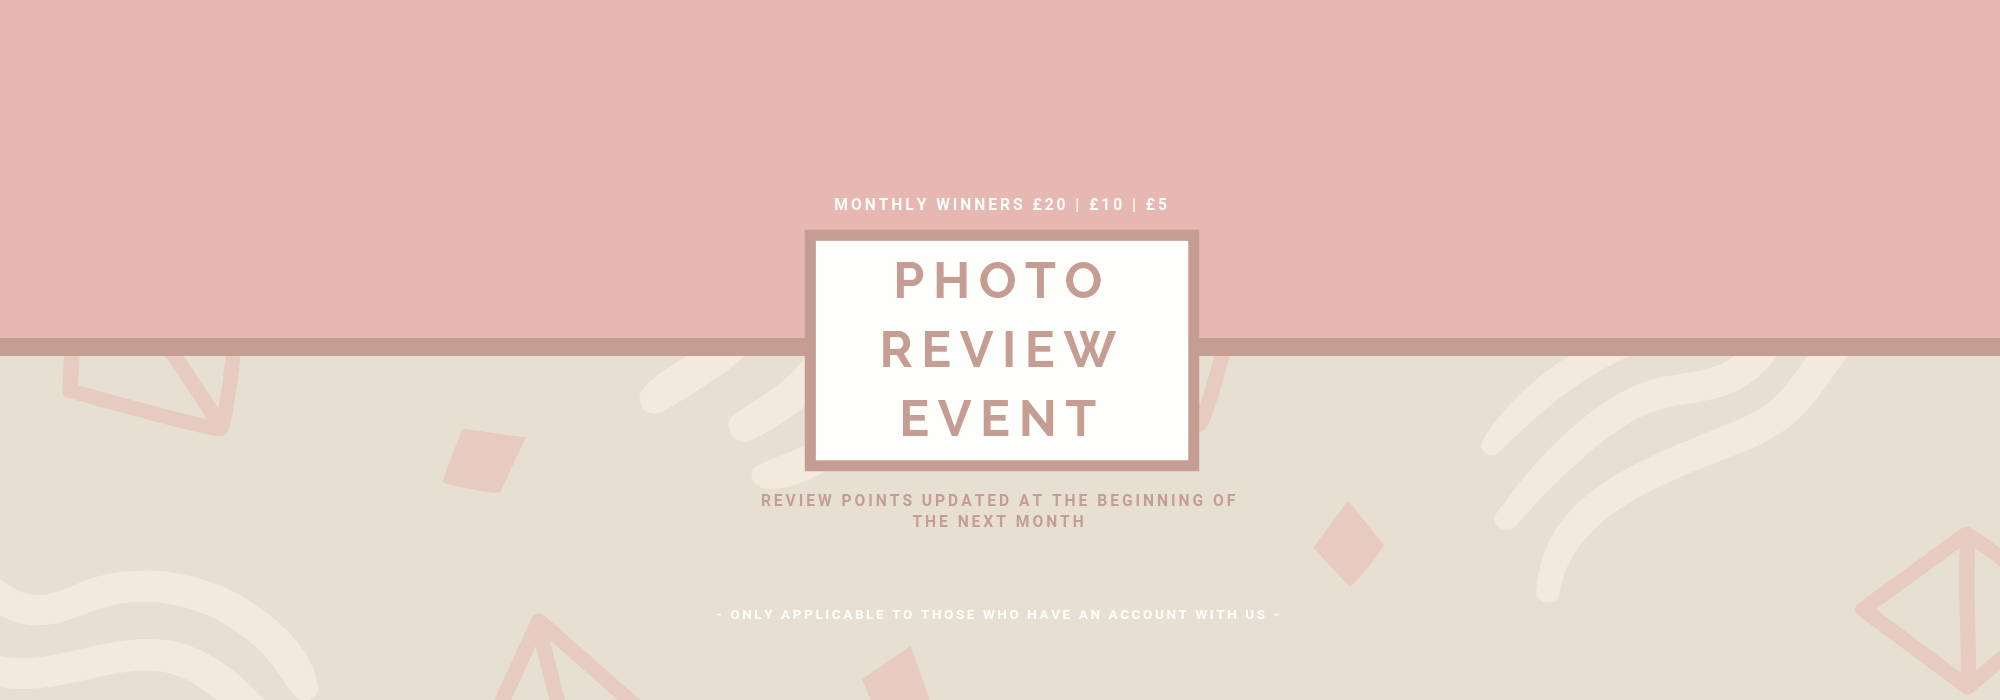 withbling-with-bling-homepage-photo-review-event-banner